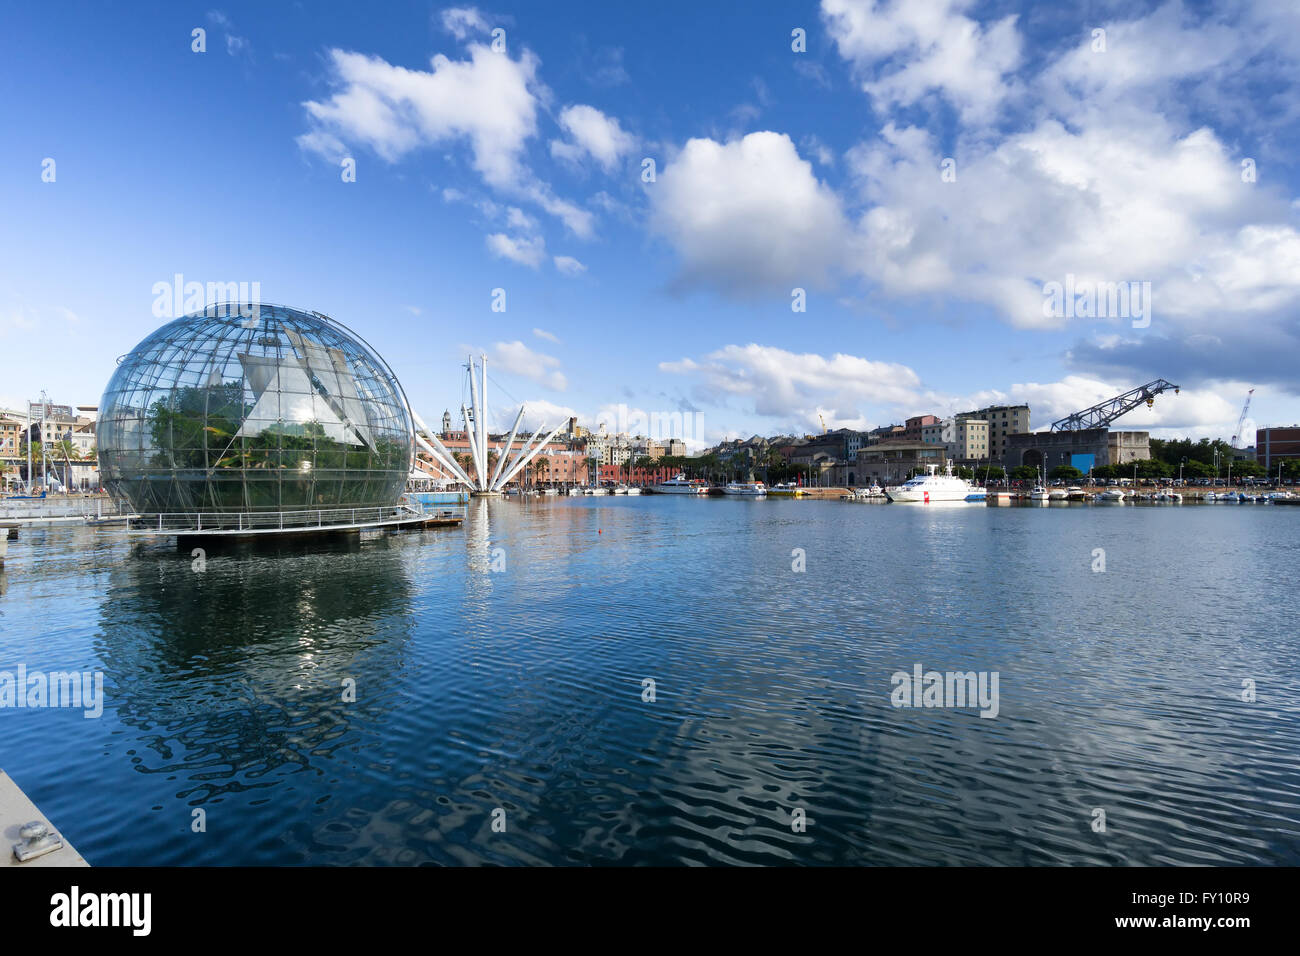 GENOA, ITALY - AUGUST, 23: The old harbor on August 23, 2014 in Genoa. The harbor of Genoa is the busiest port of - Stock Image